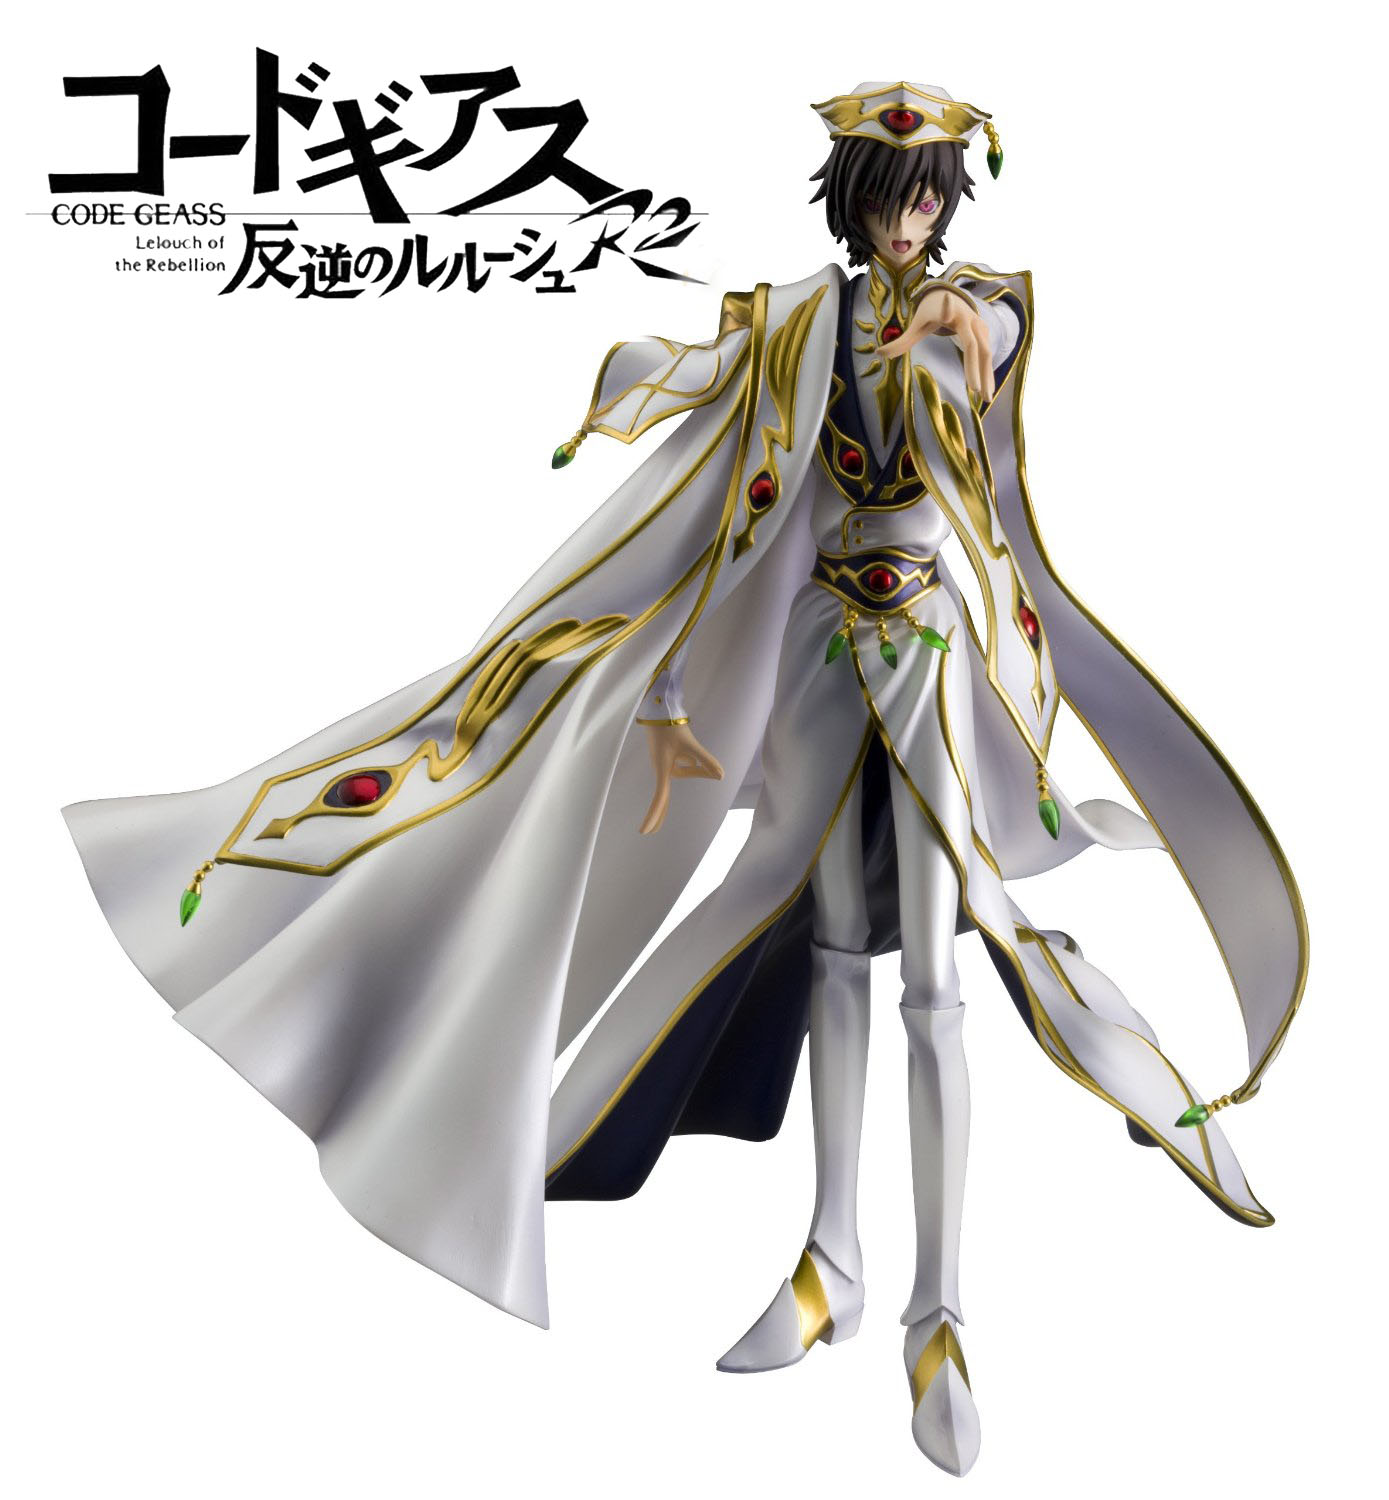 Code Geass R2 Lelouch Lamperouge / Lelouch Vi Britannia Emperor Ver. PVC Action Figure Toy Collectible Model ACGN Figure(China (Mainland))